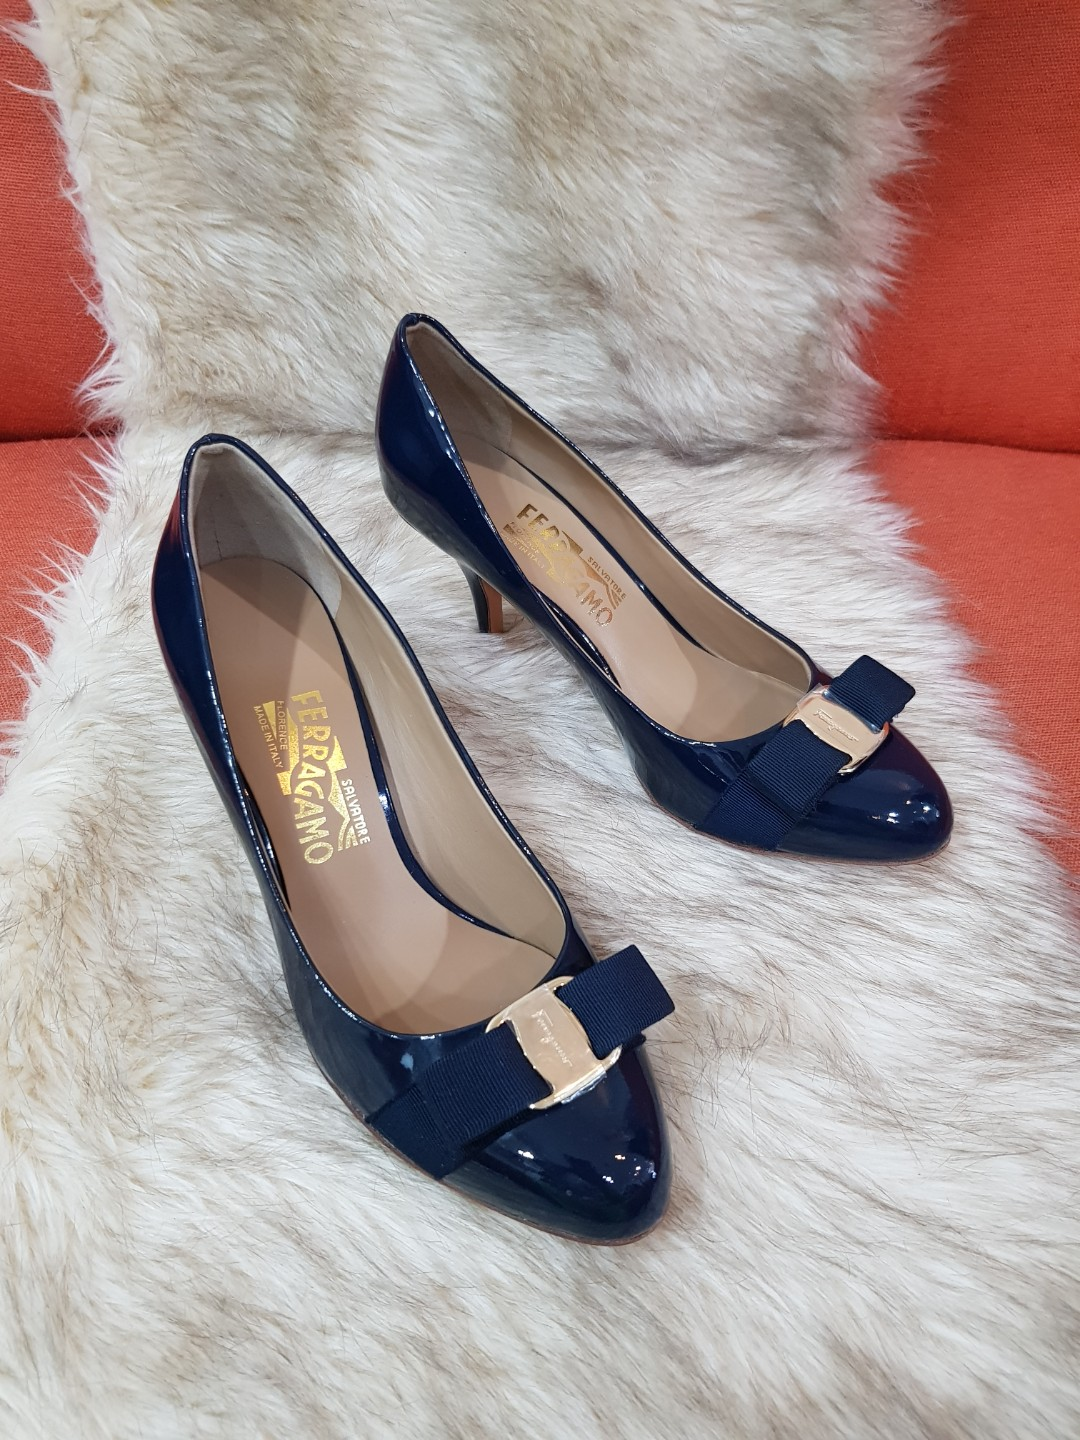 443e51ef929 Authentic Salvatore Ferragamo In Navy Blue Patent Leather Pumps Size ...